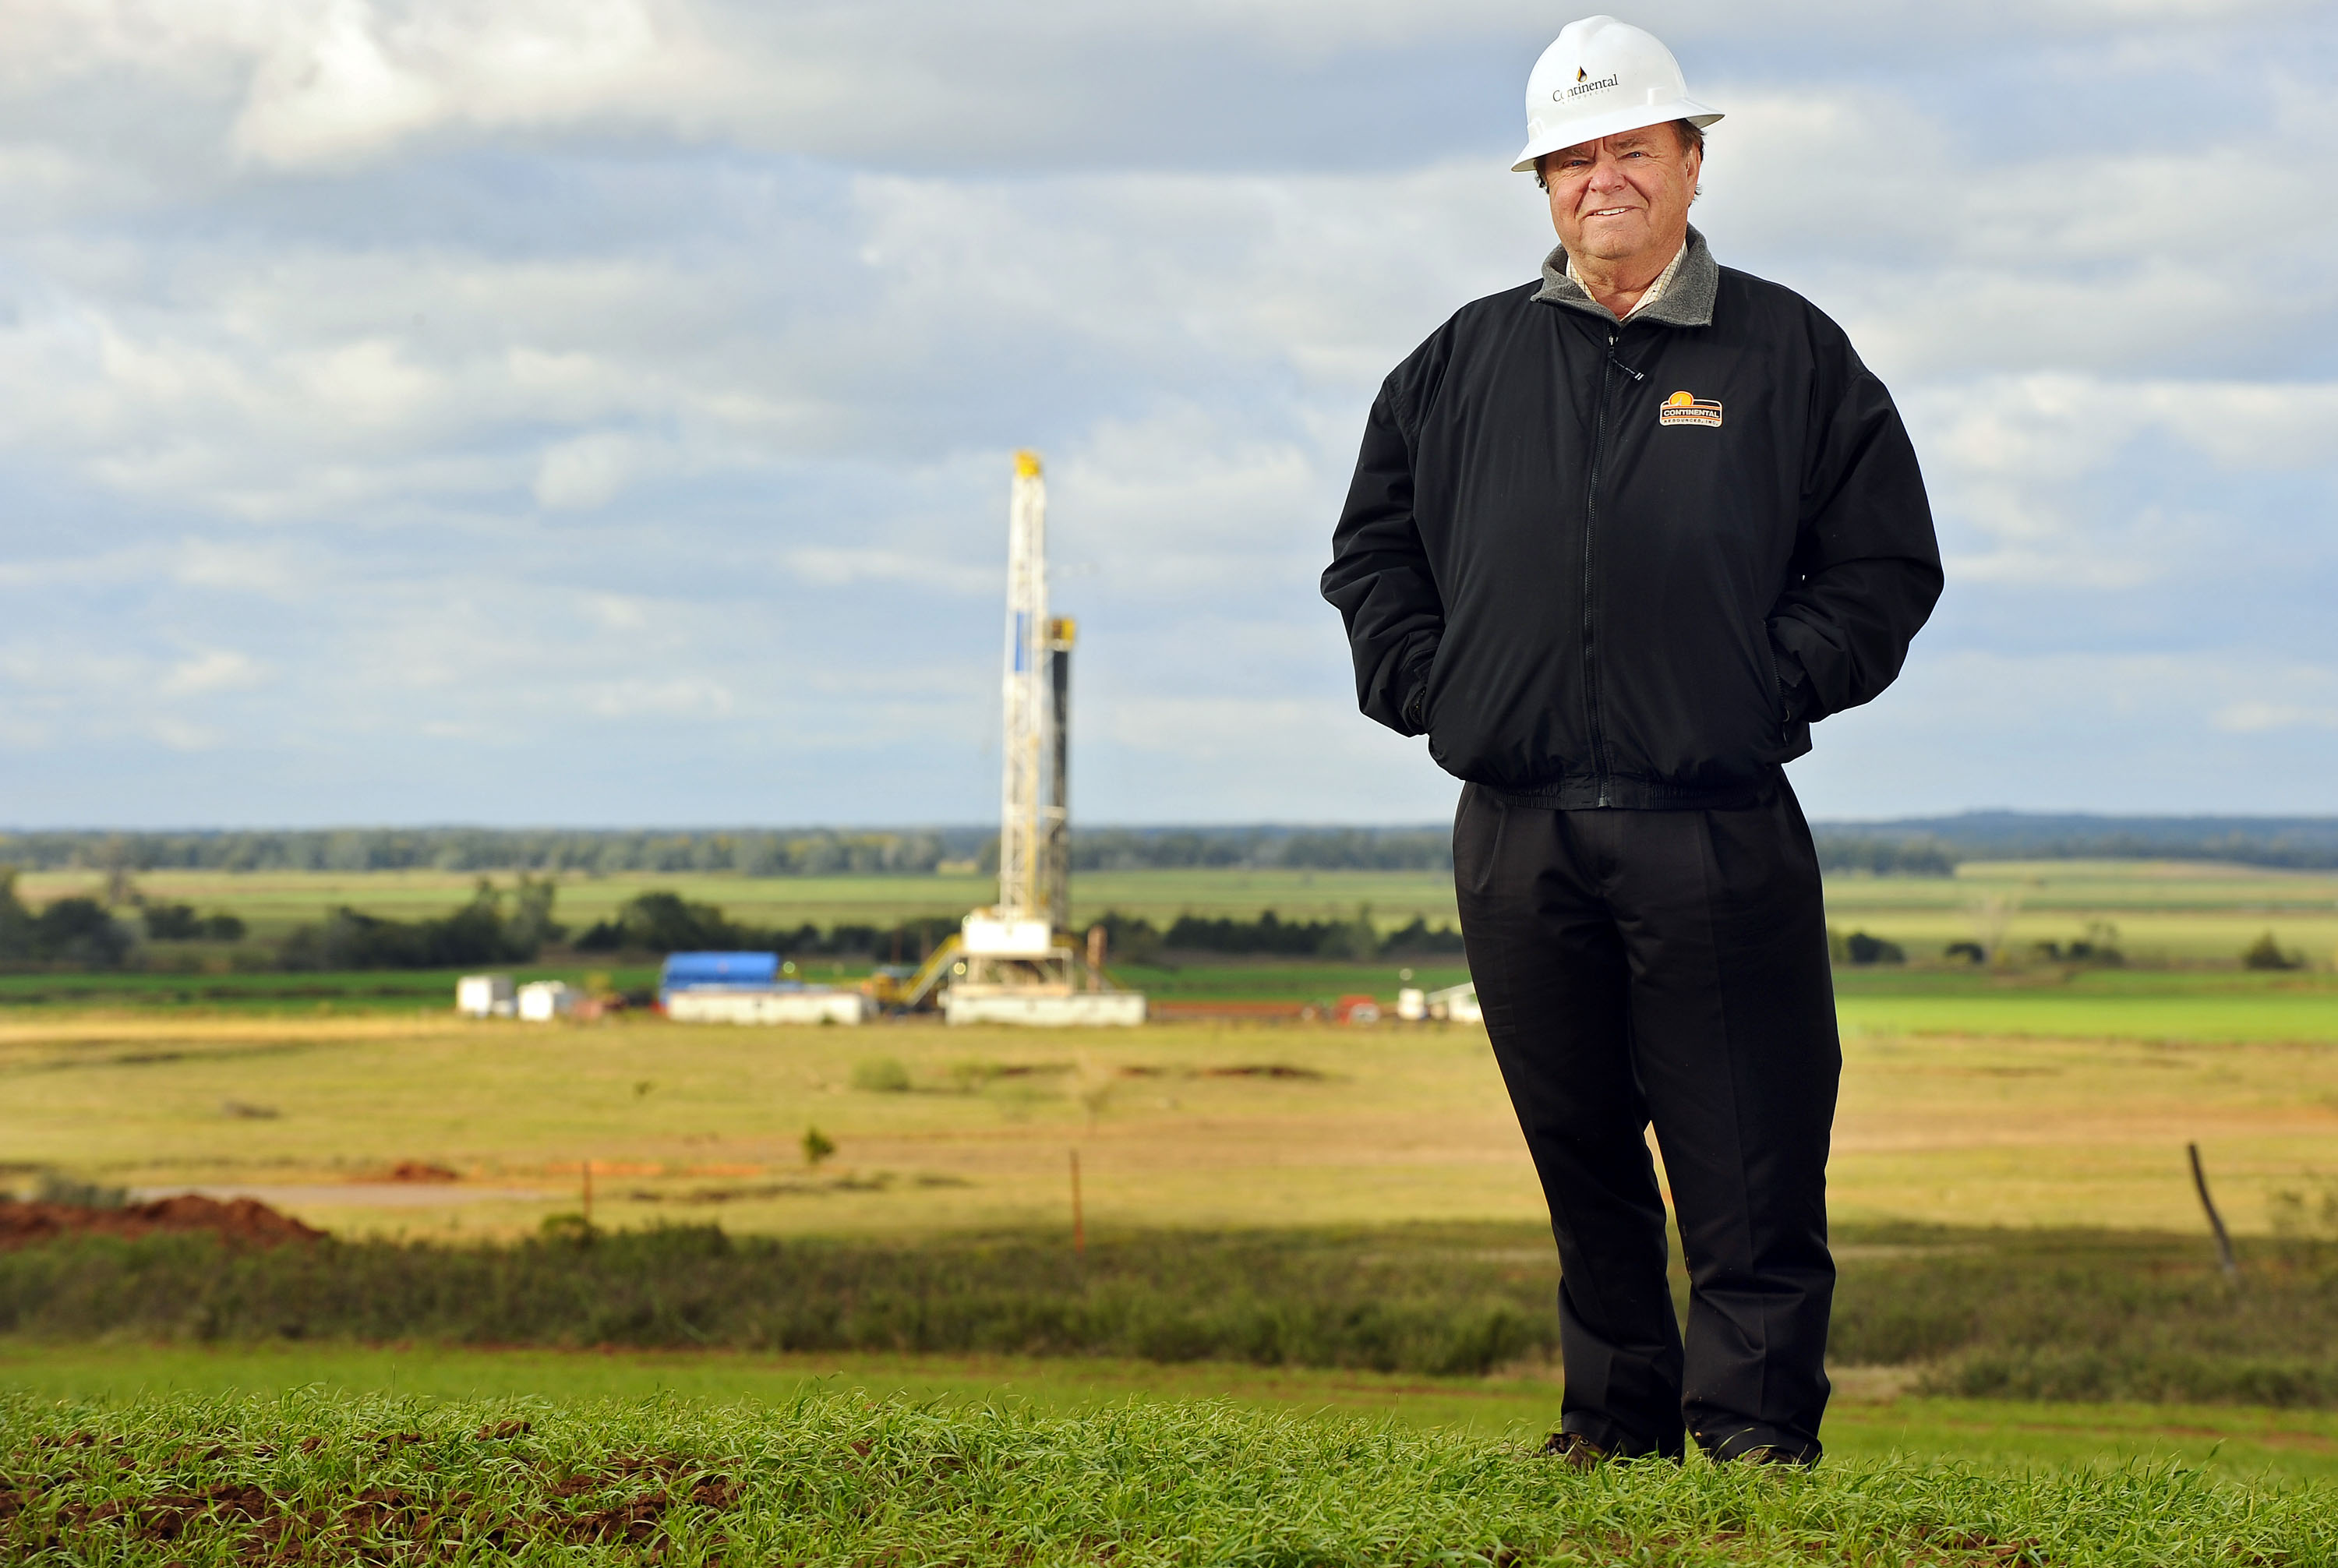 Harold Hamm, chairman of Continental Resources Inc., stands